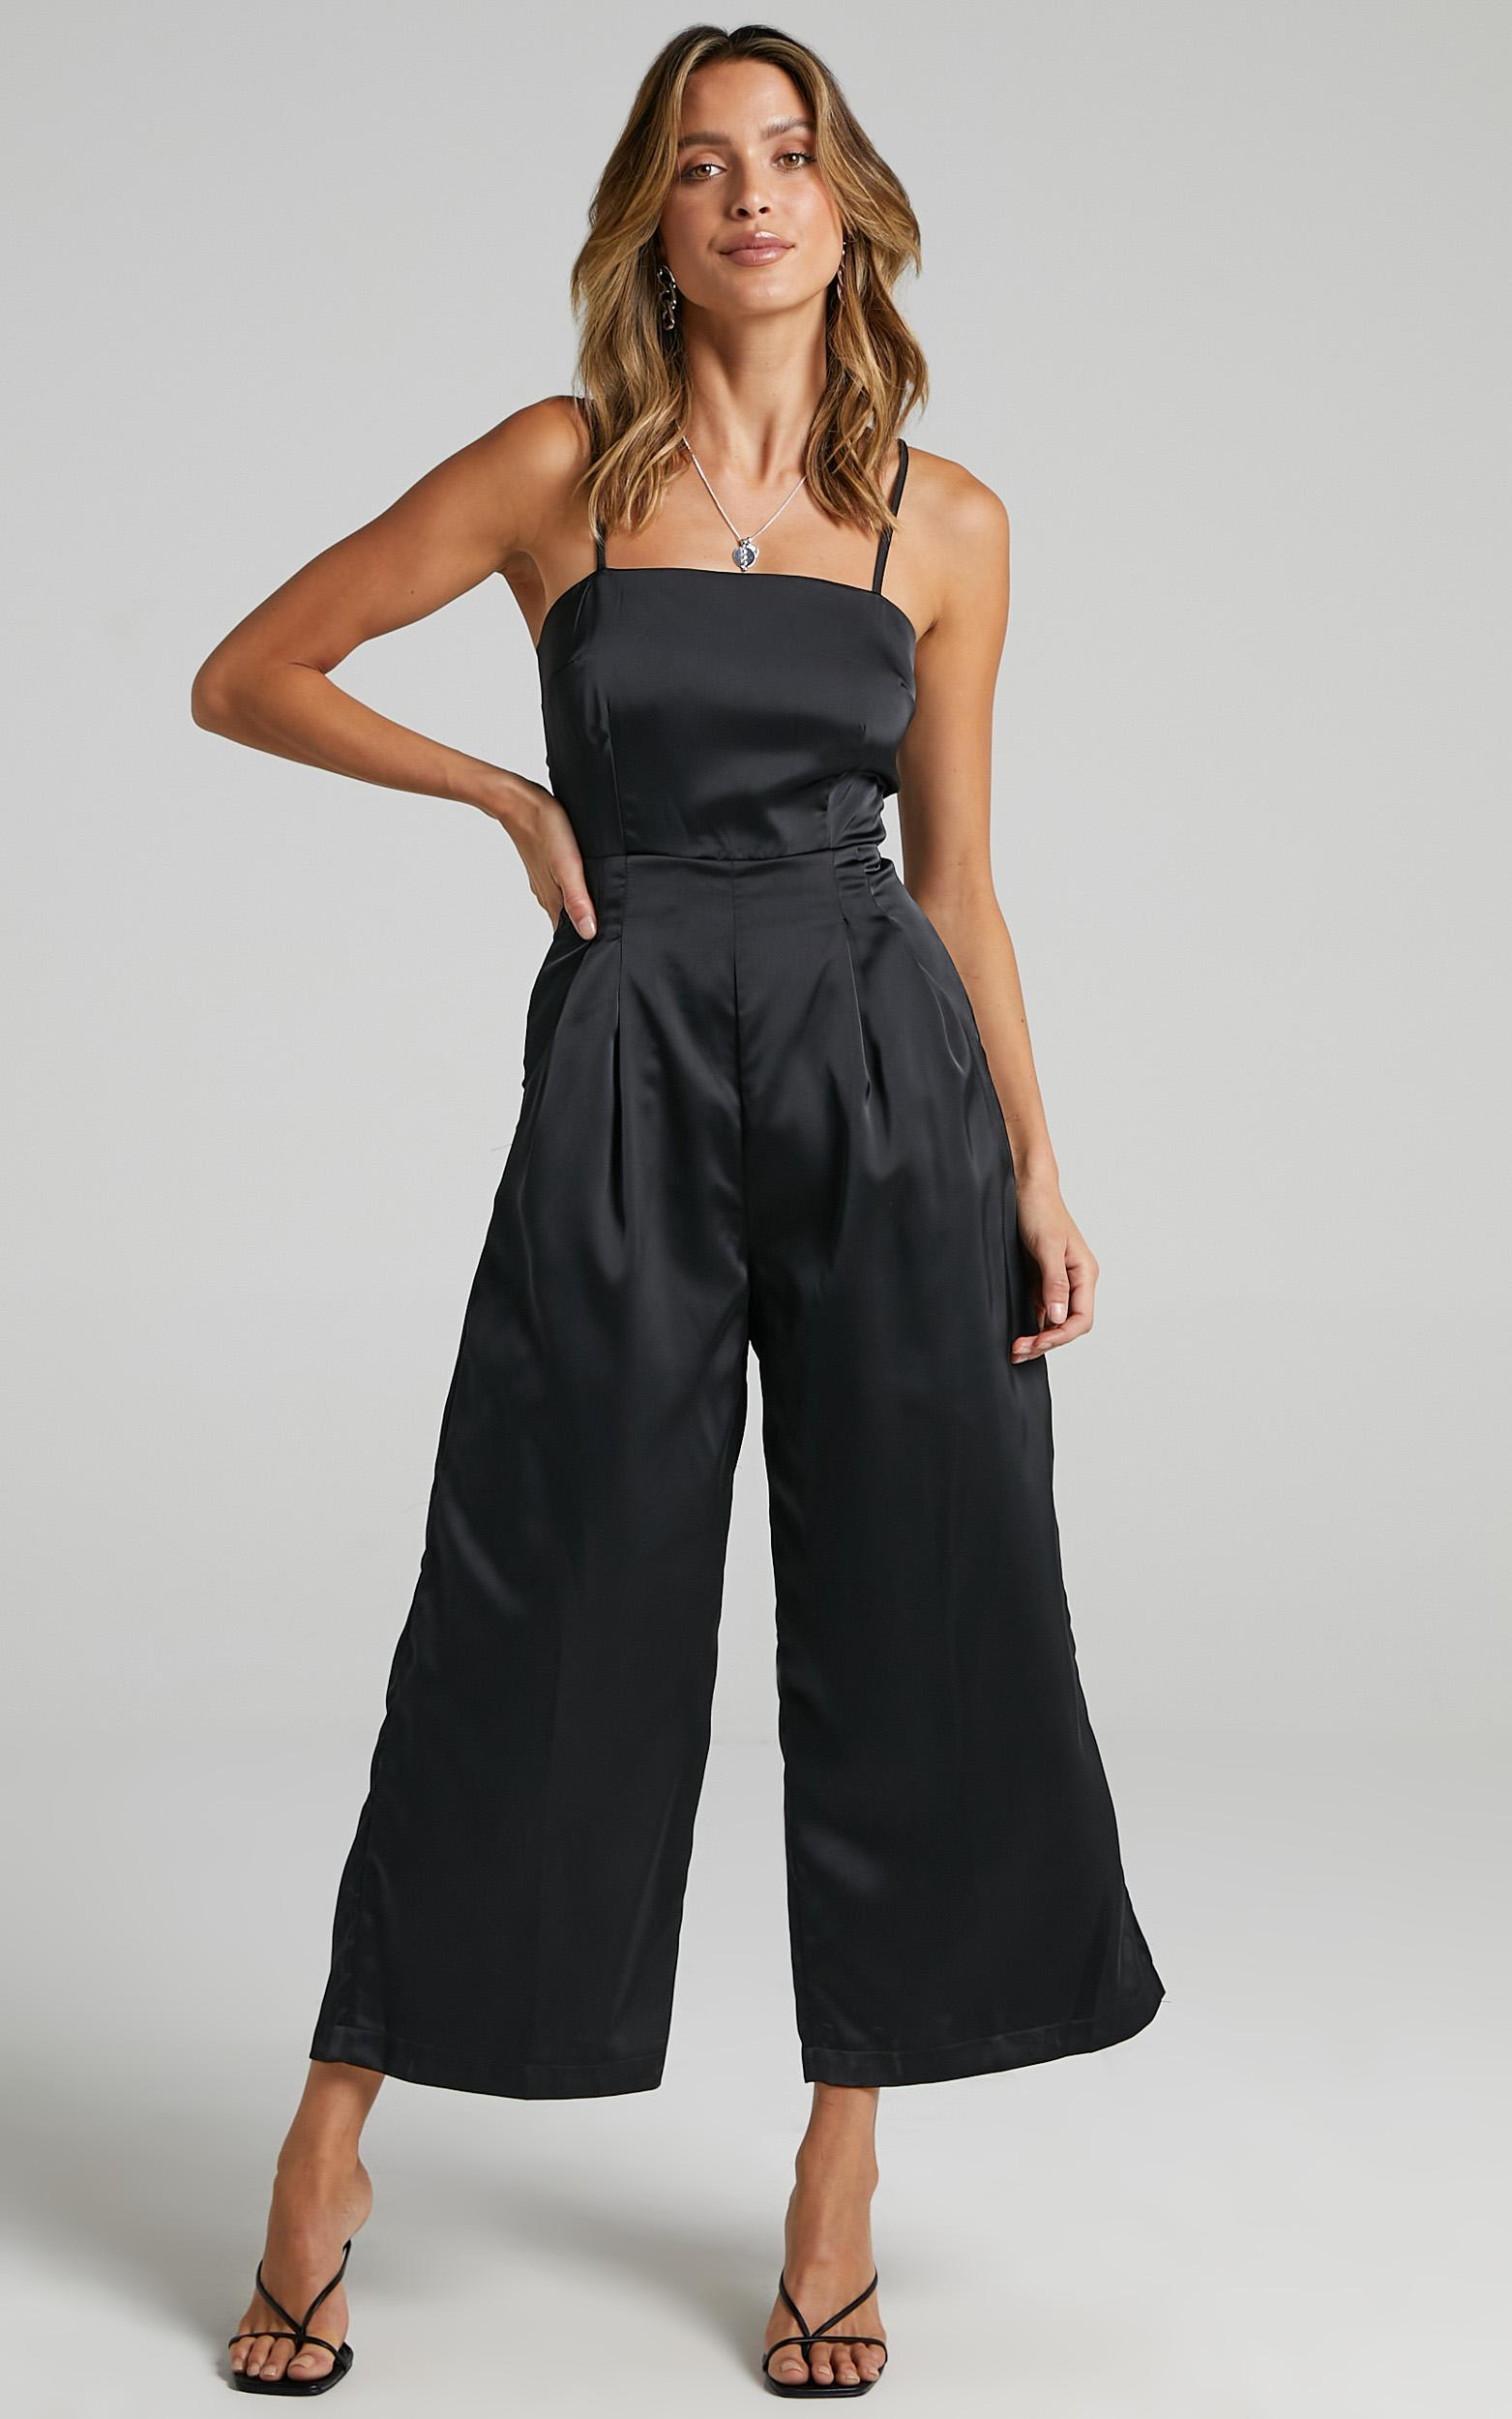 Daisy Jumpsuit in Black Satin - 6 (XS), Black, hi-res image number null